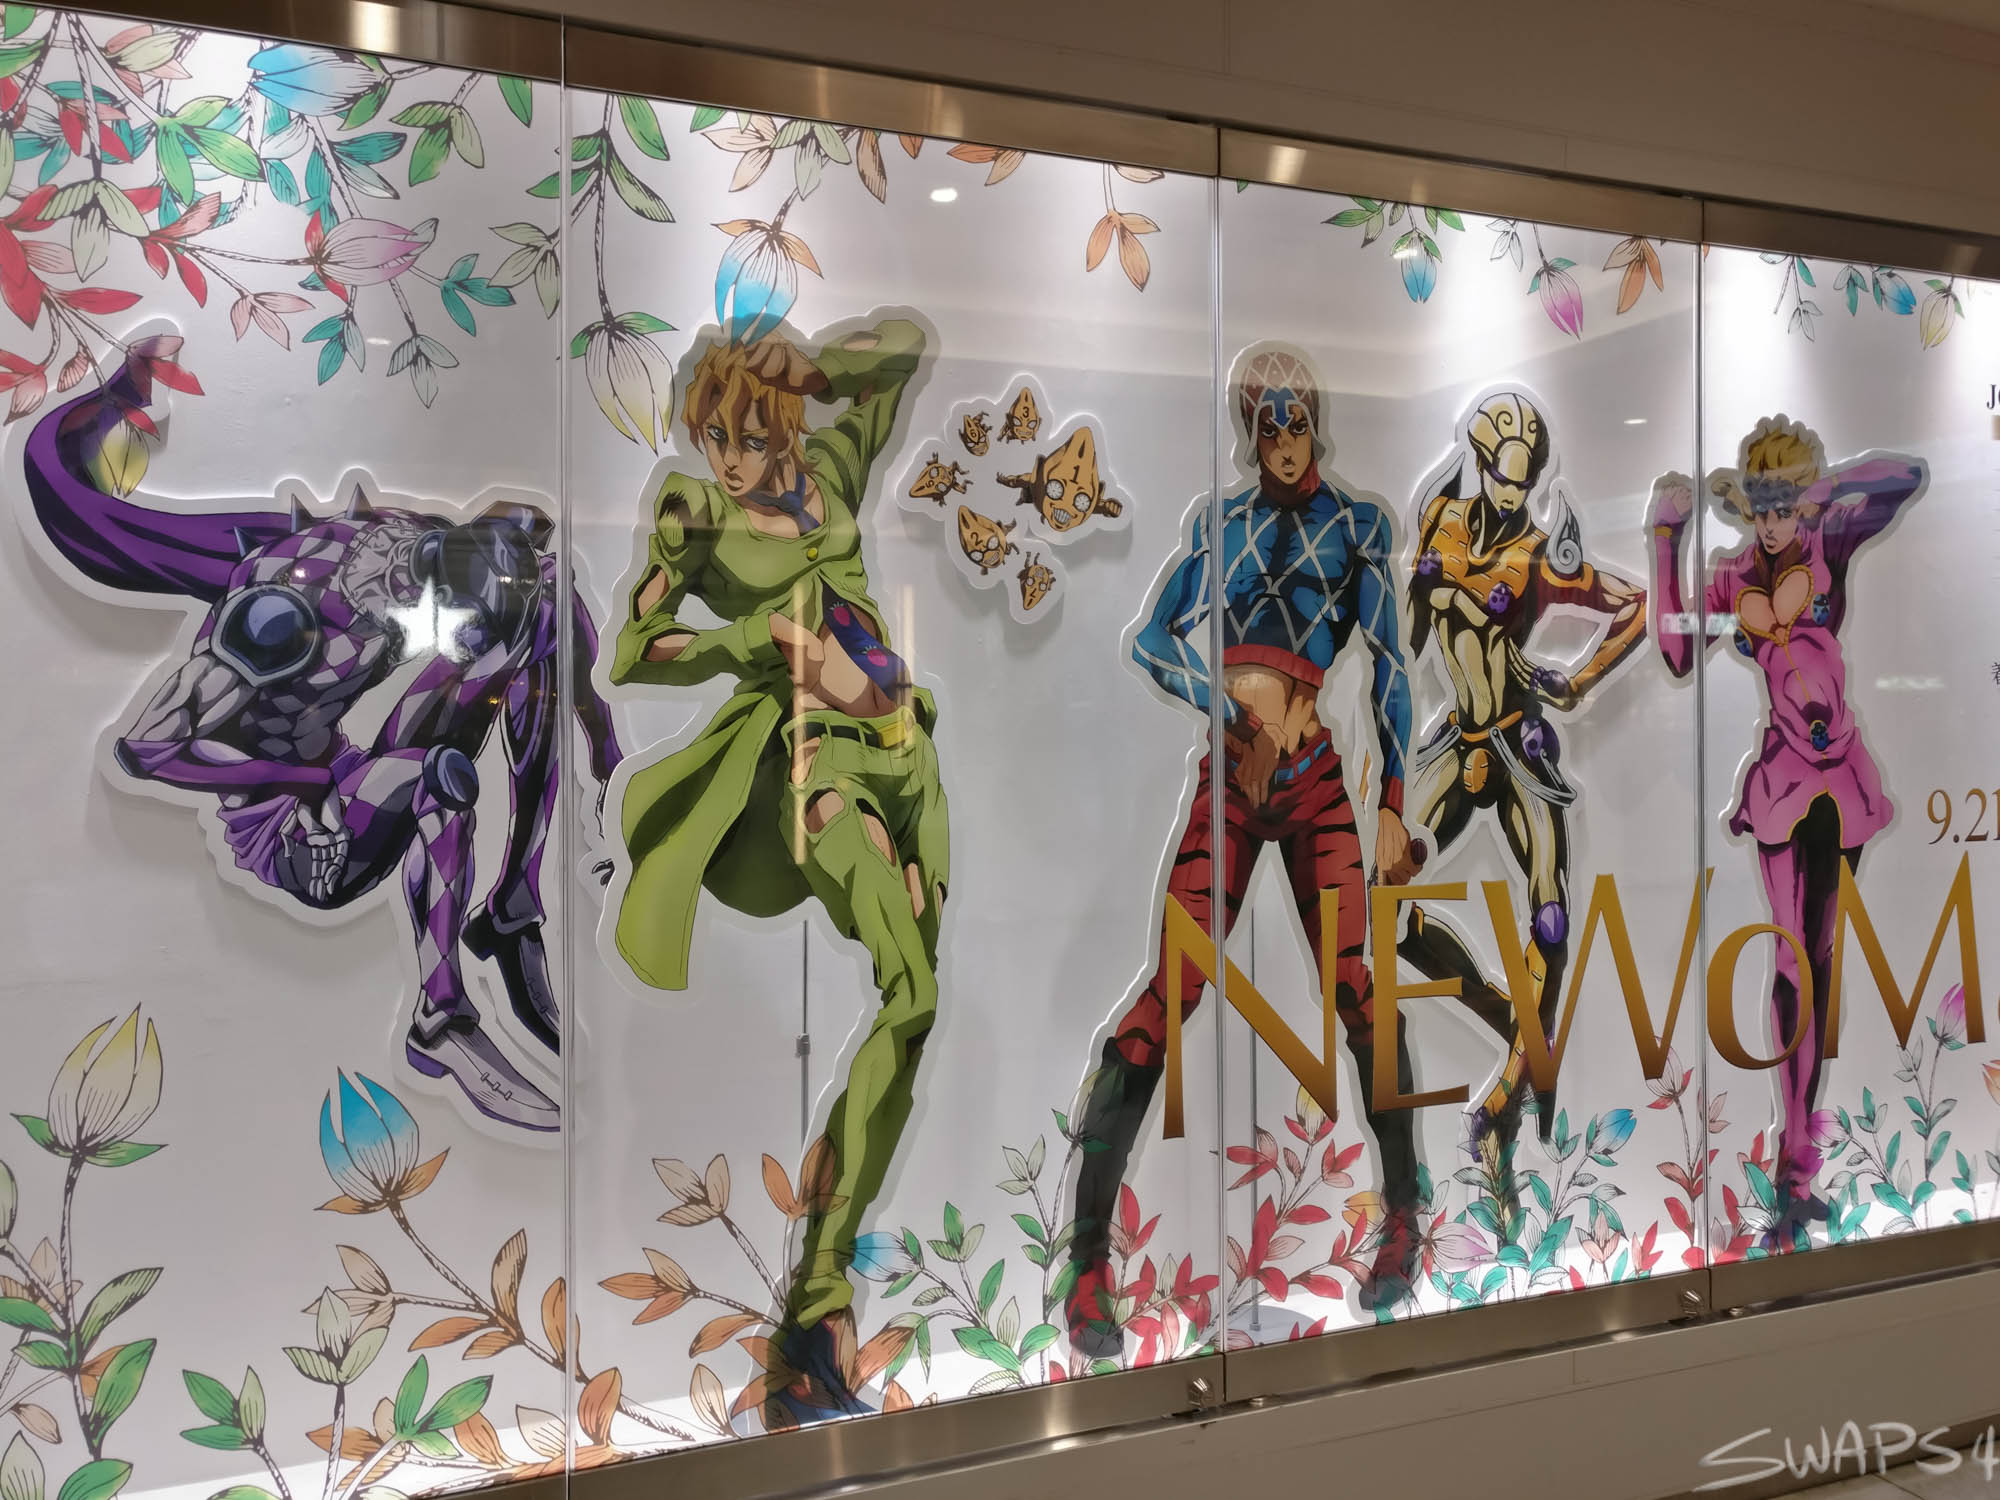 JoJo's Bizarre Adventure Golden Wind x NEWoMan in Shinjuku